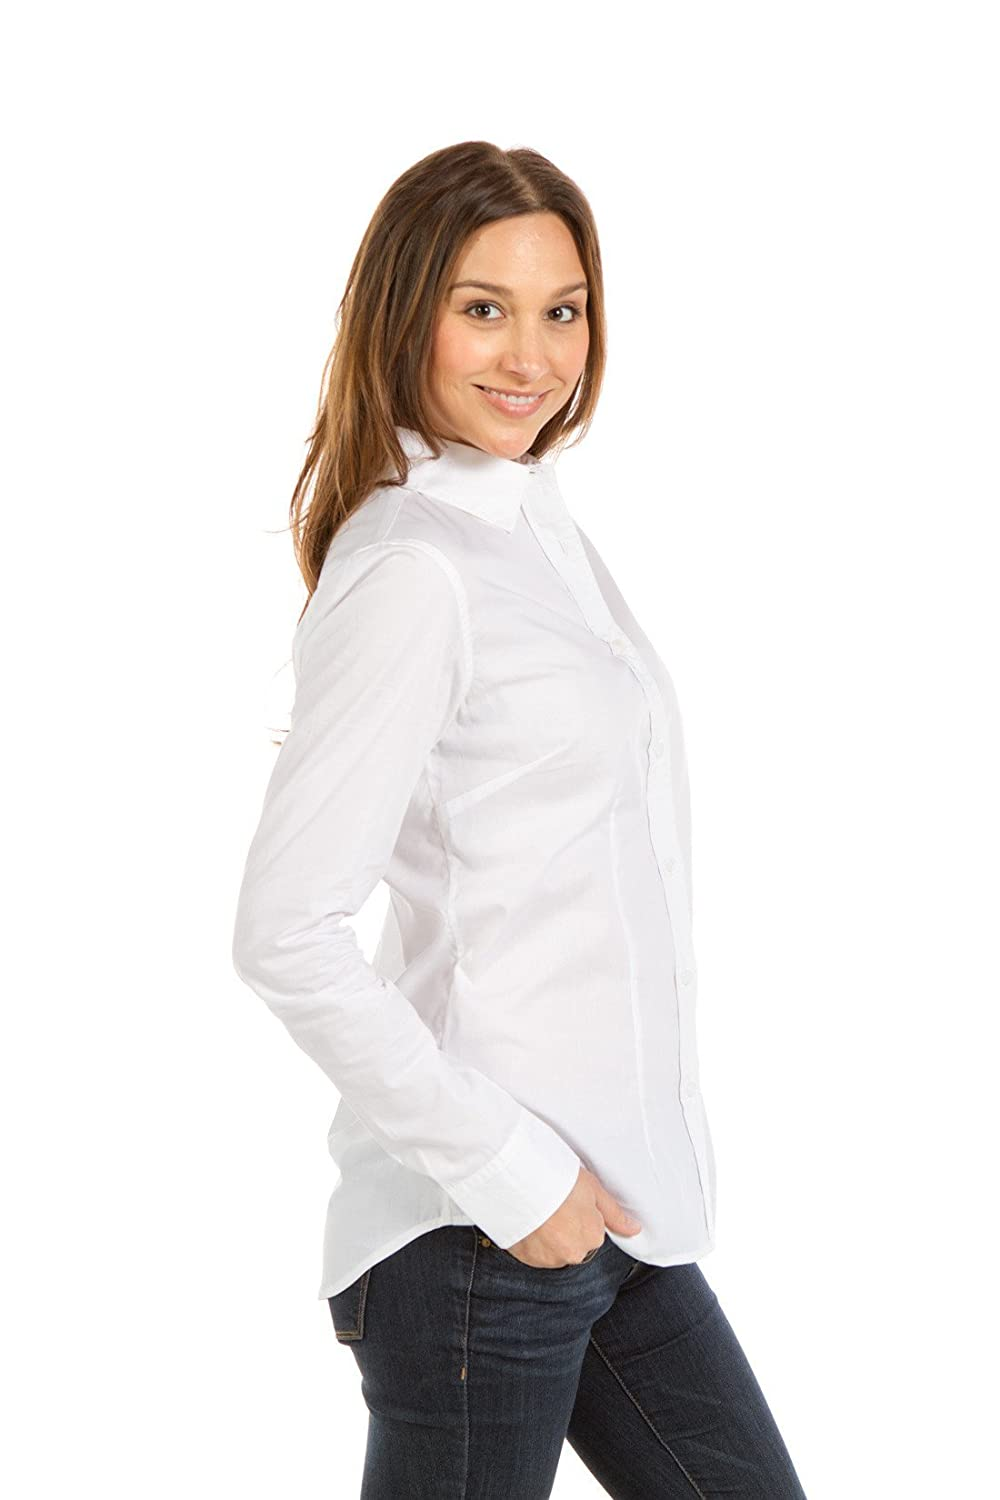 Wine Stained Blouse Review Anlis